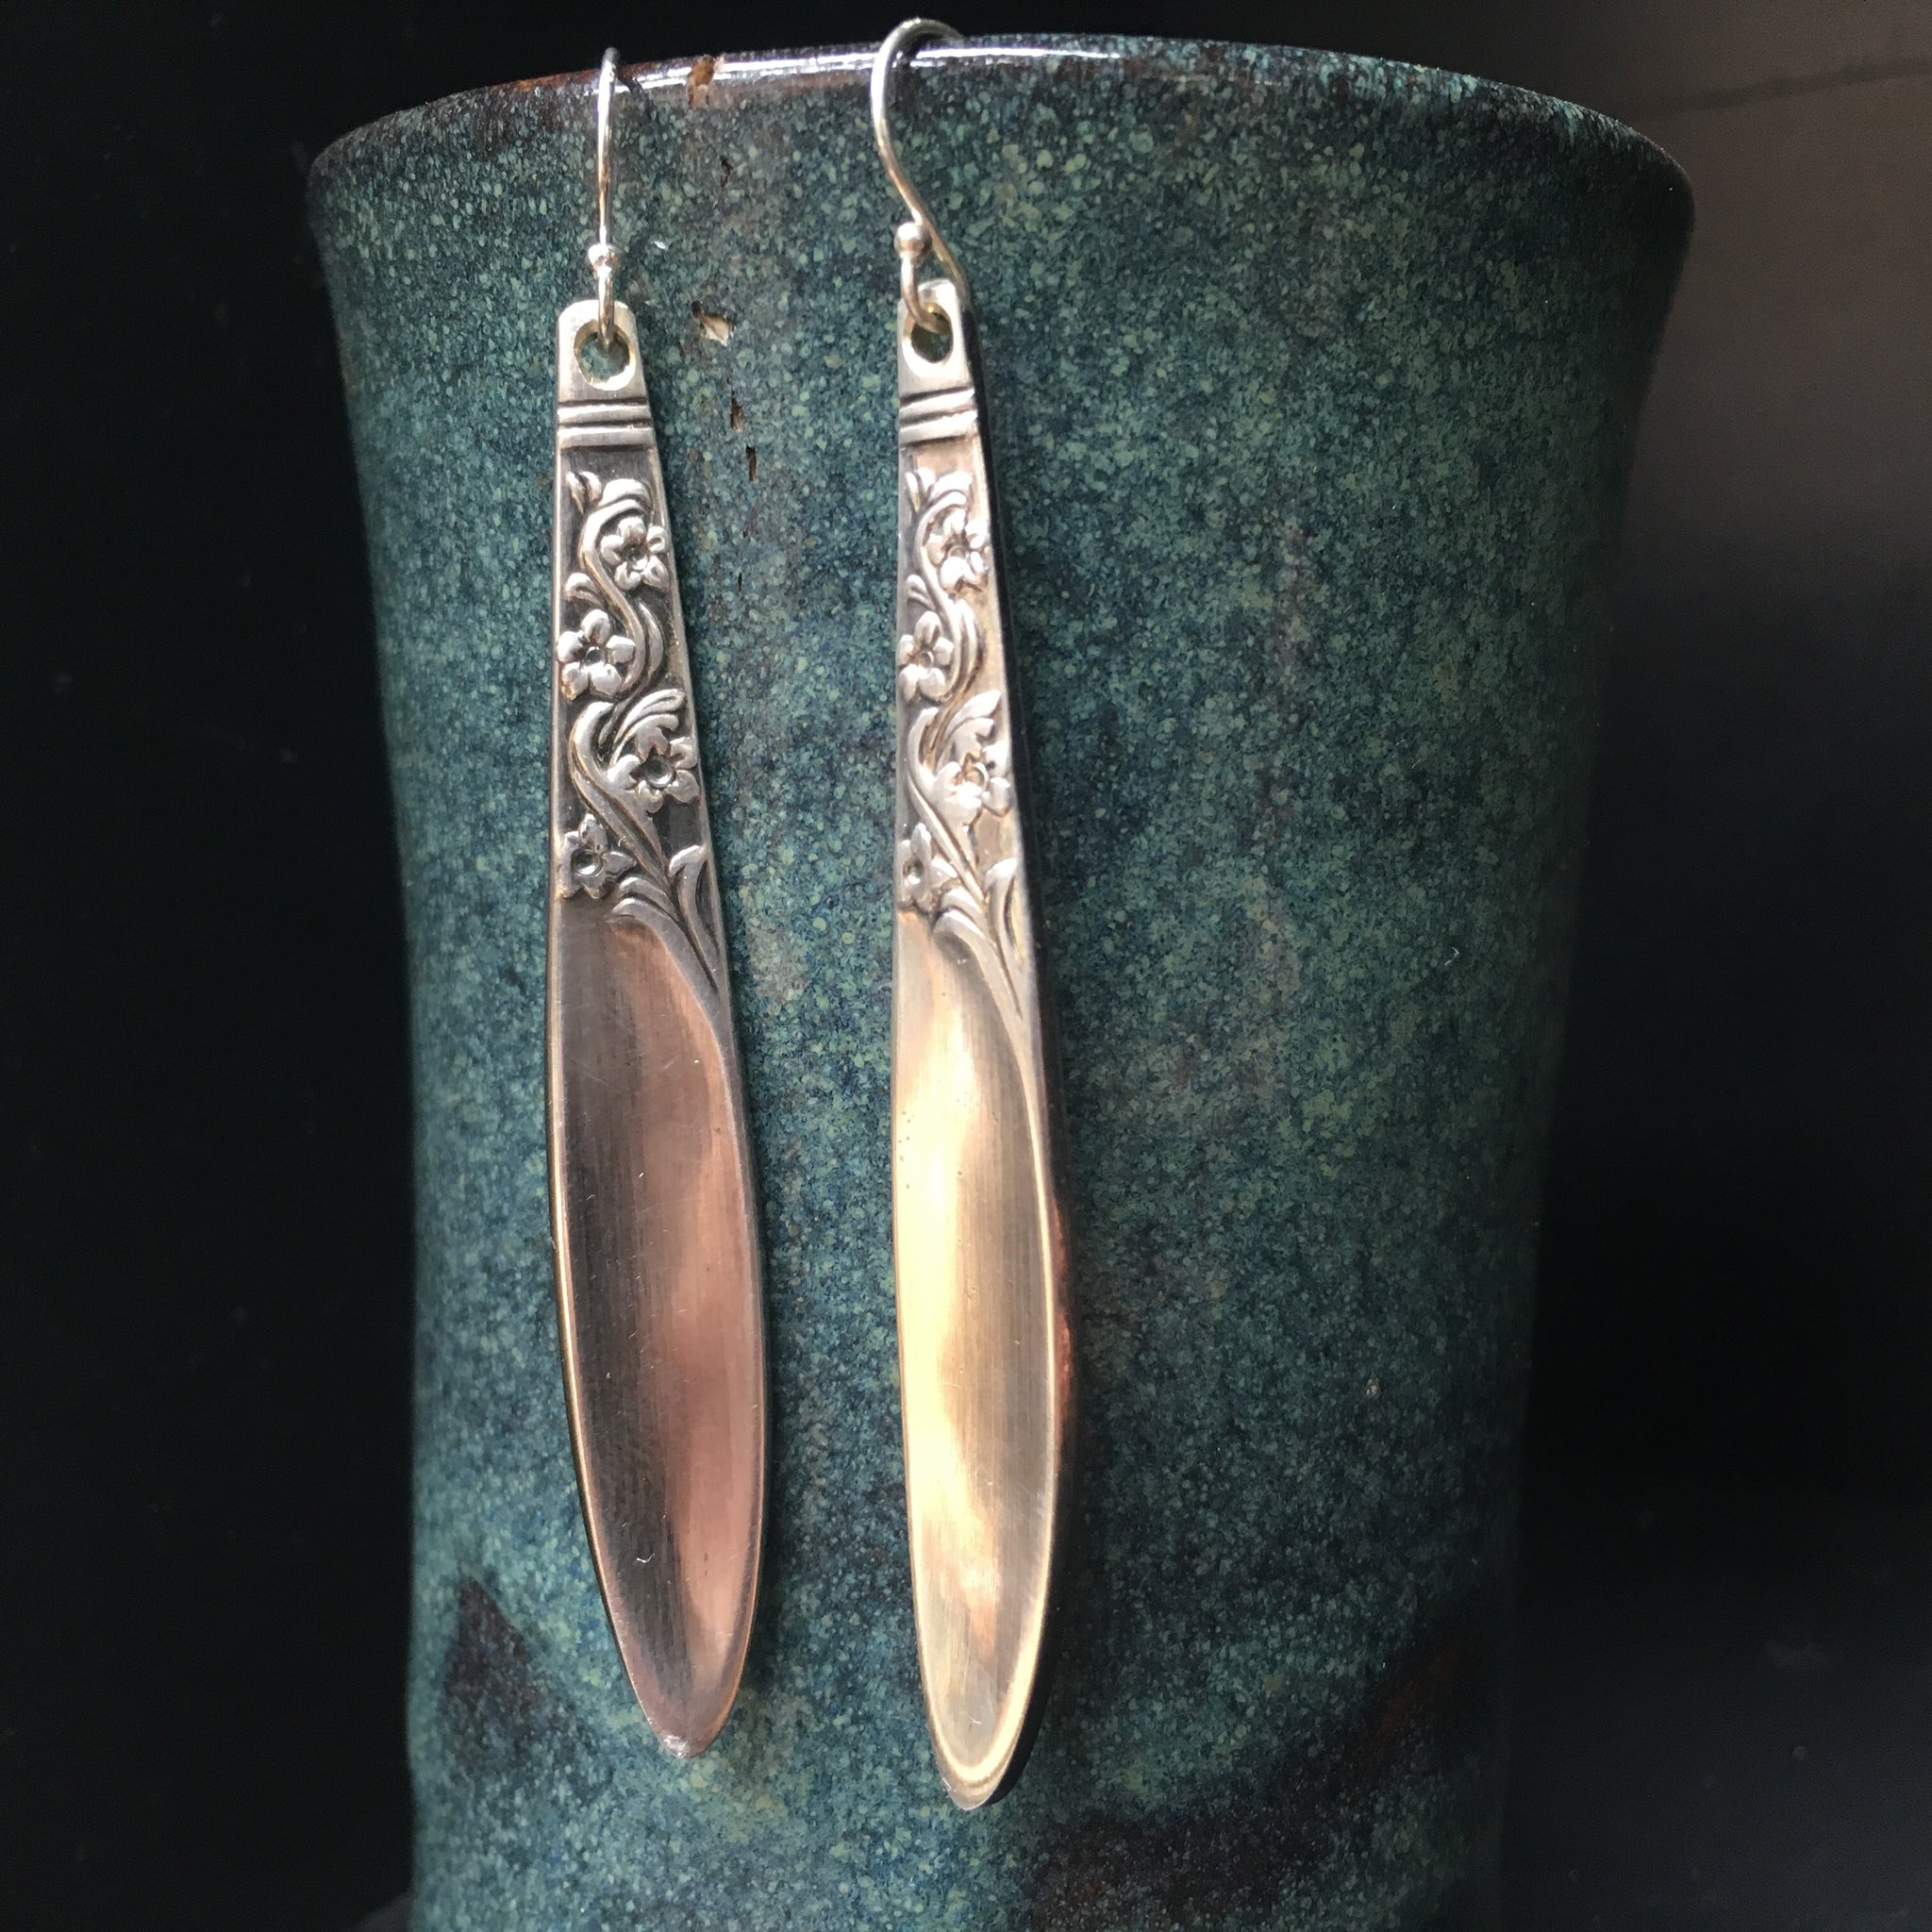 Vintage spoon drop earrings